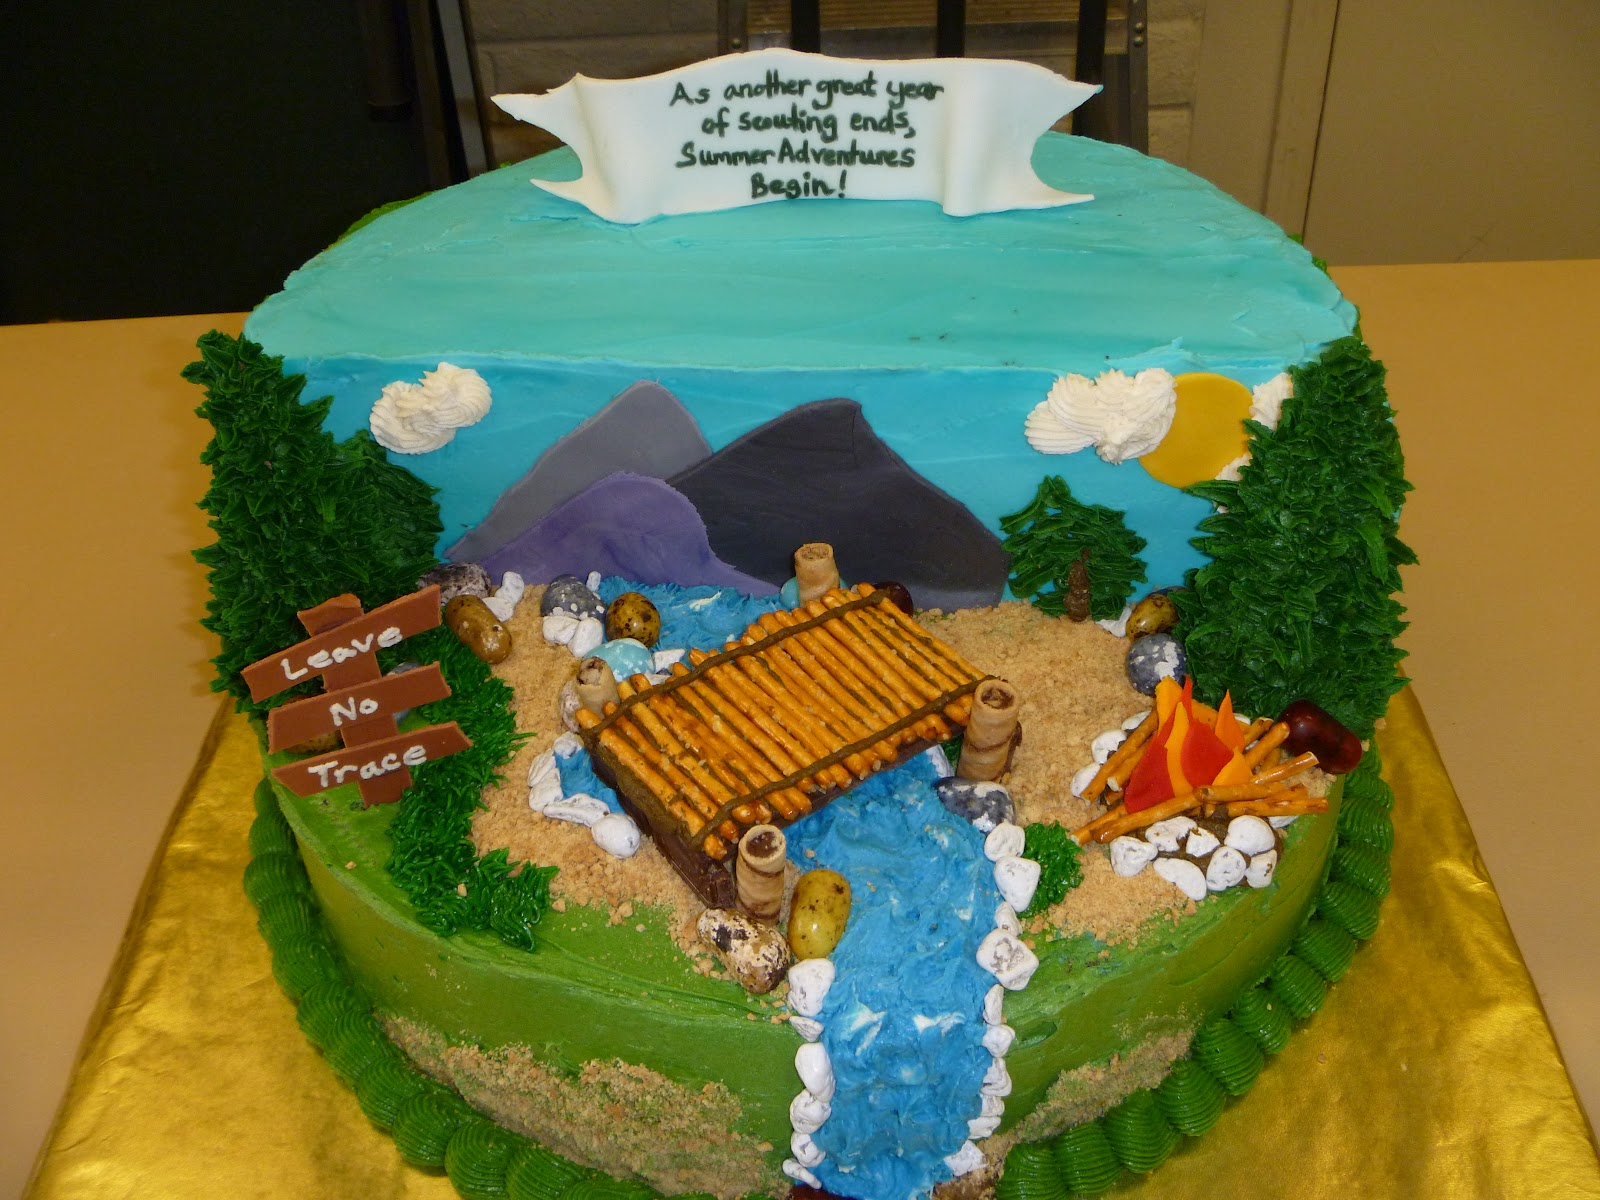 Cub Scout Crossover Cake